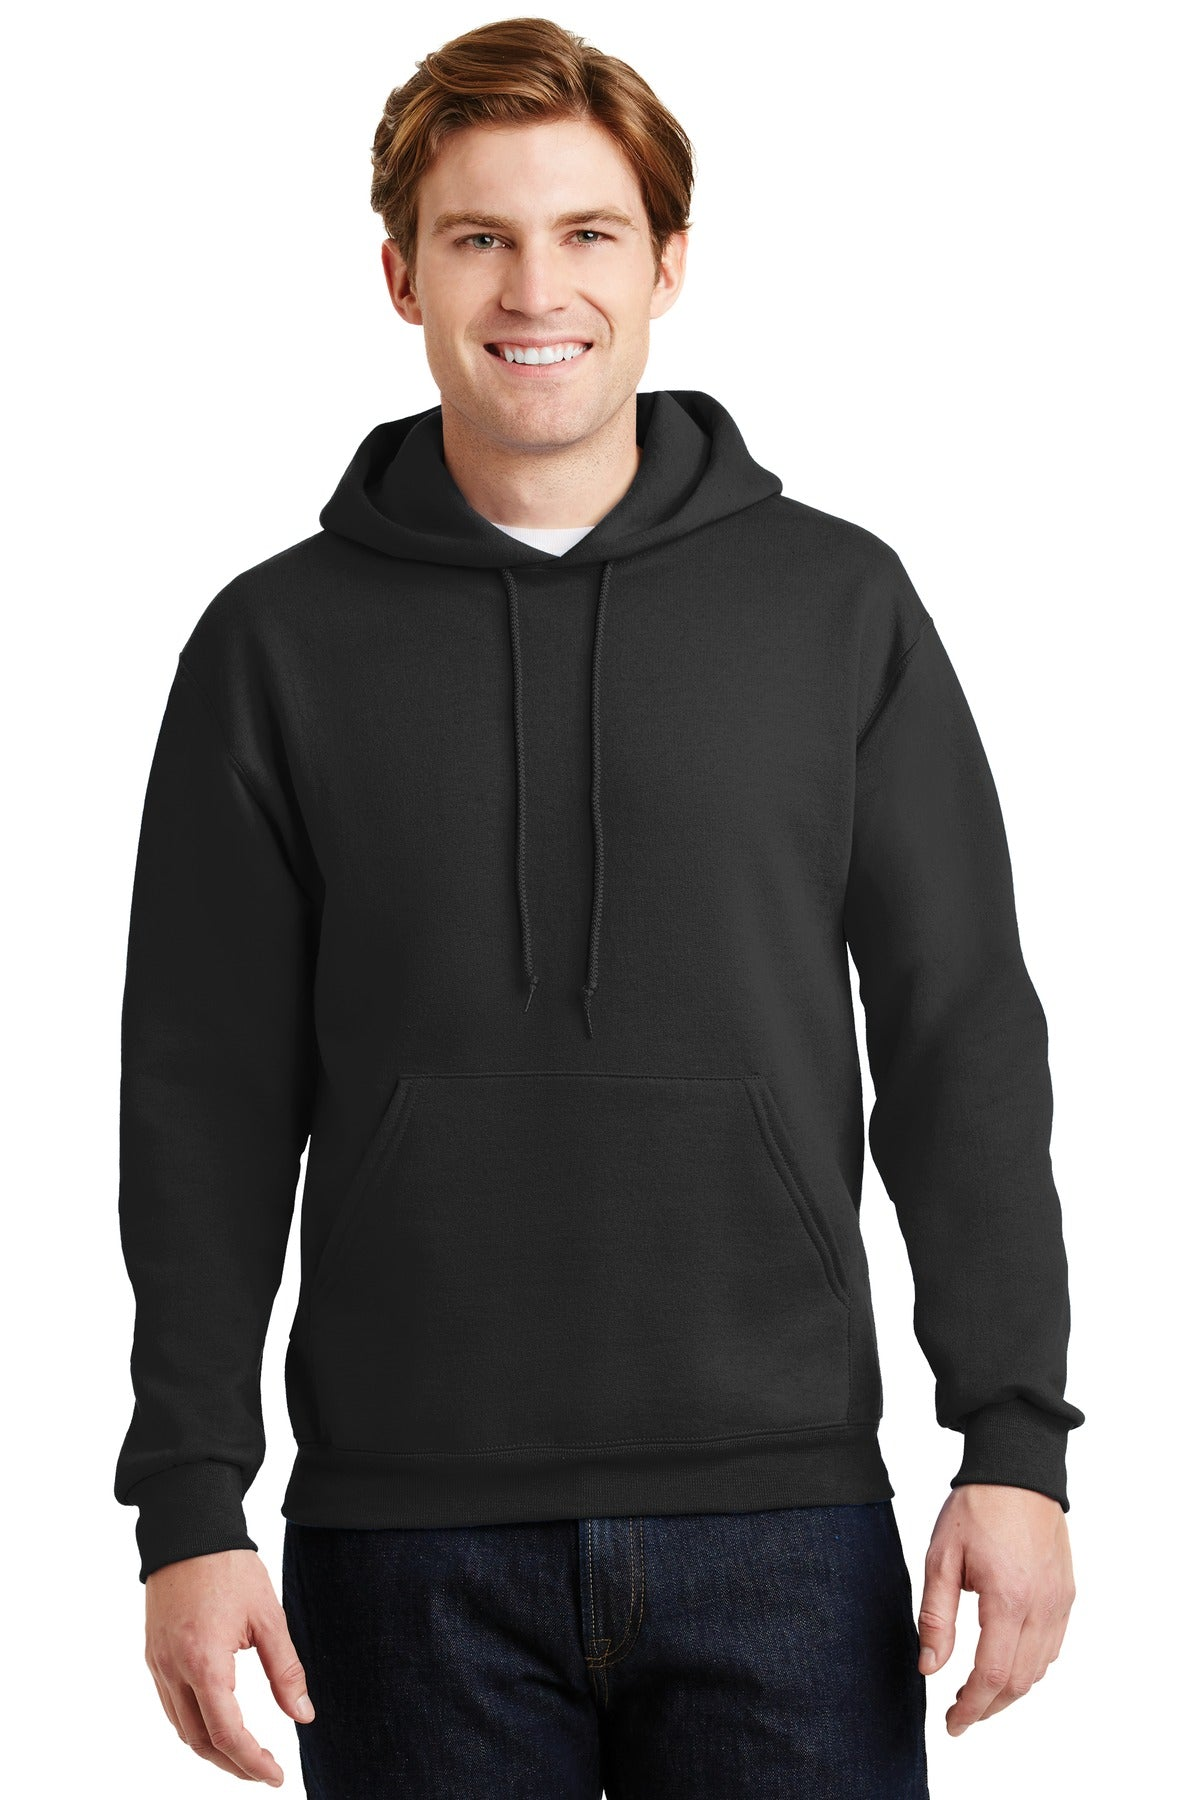 JERZEES® SUPER SWEATS® NuBlend® - Pullover Hooded Sweatshirt.  4997M - Aspire Zone